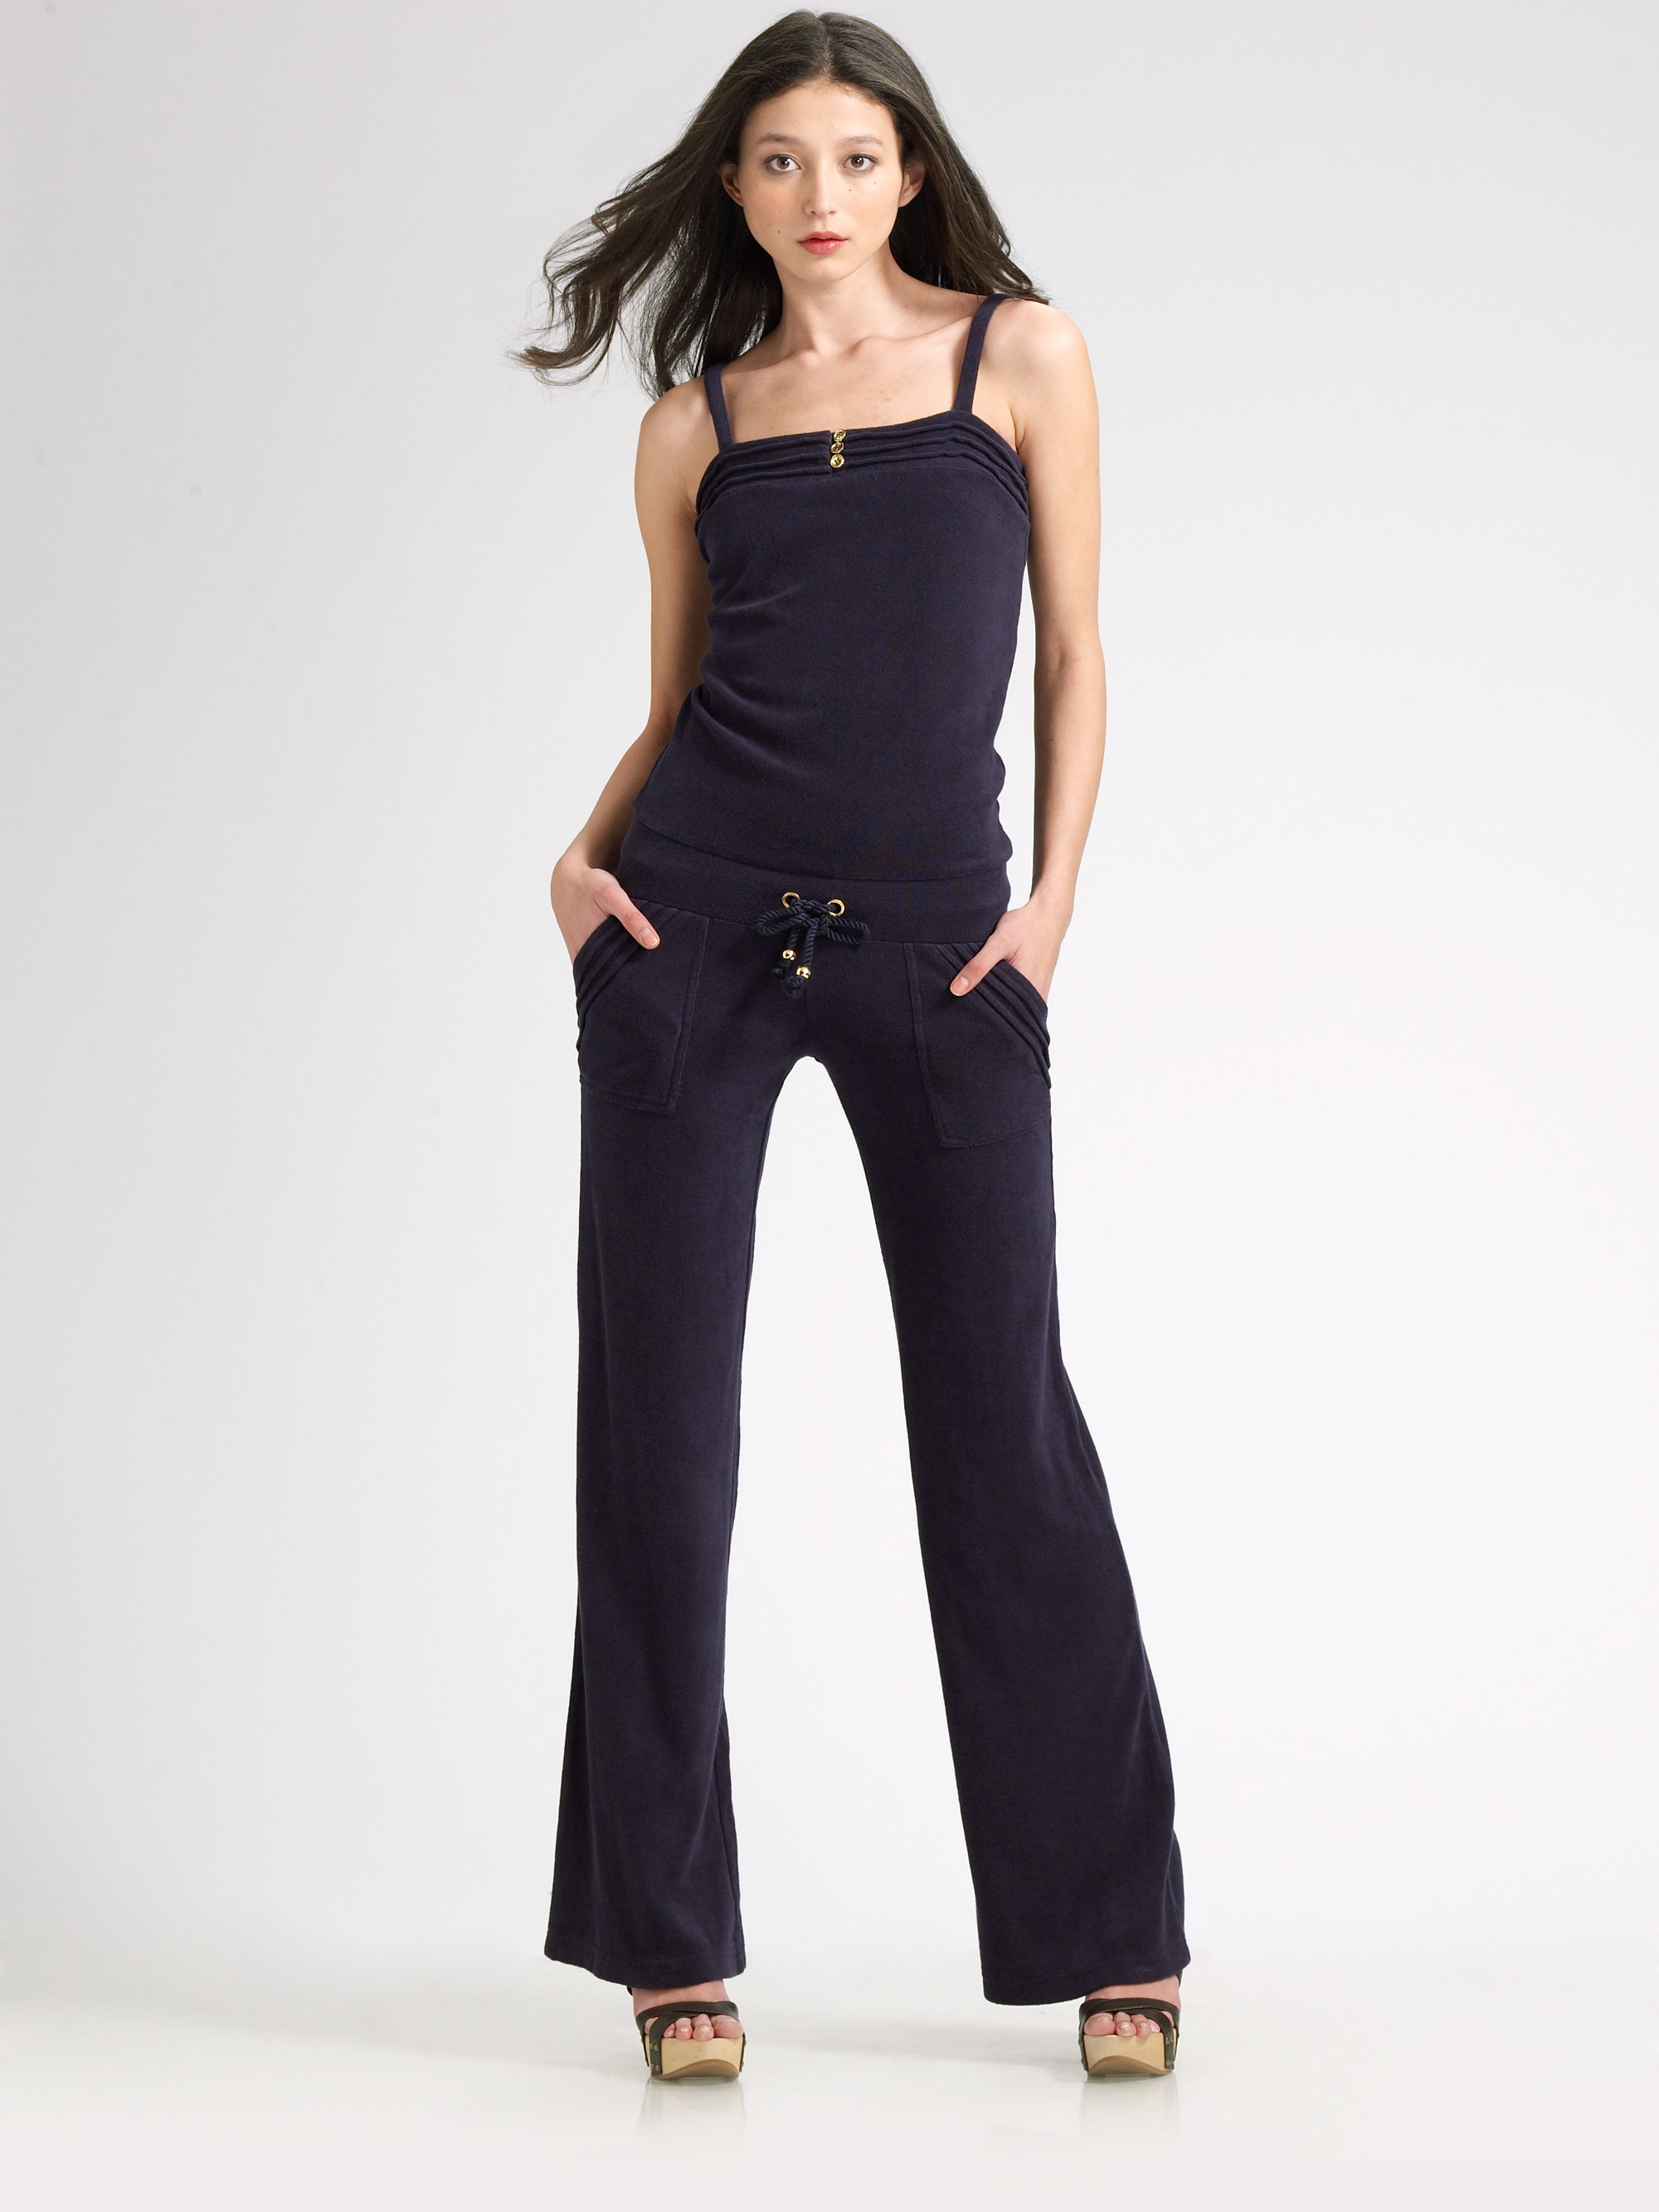 Velour Pant Suit Petite | Velor Jumpsuit | Juicy Tracksuit